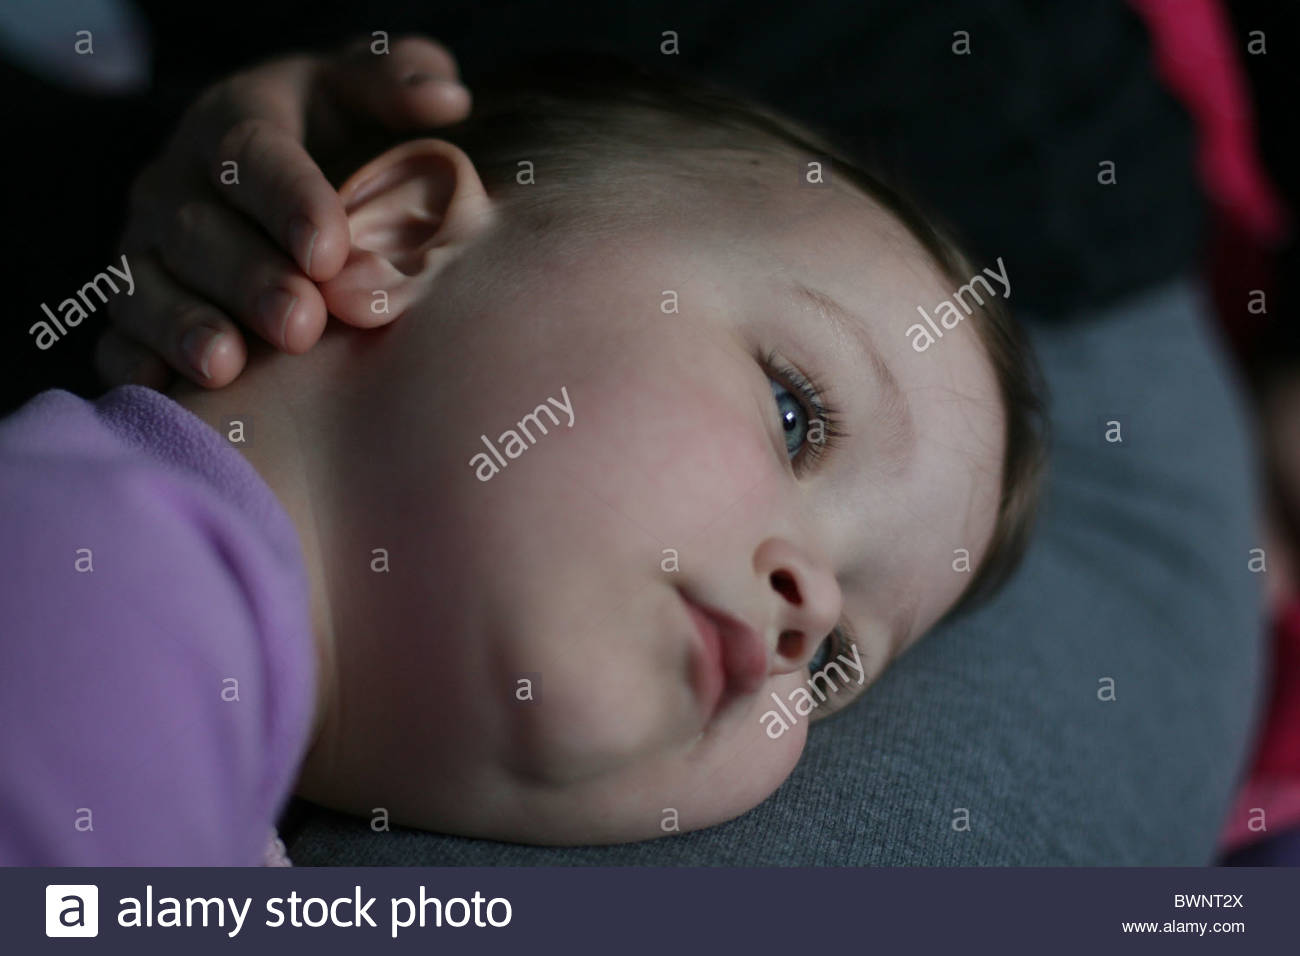 A two year old girl with her head on her mother's lap. - Stock Image